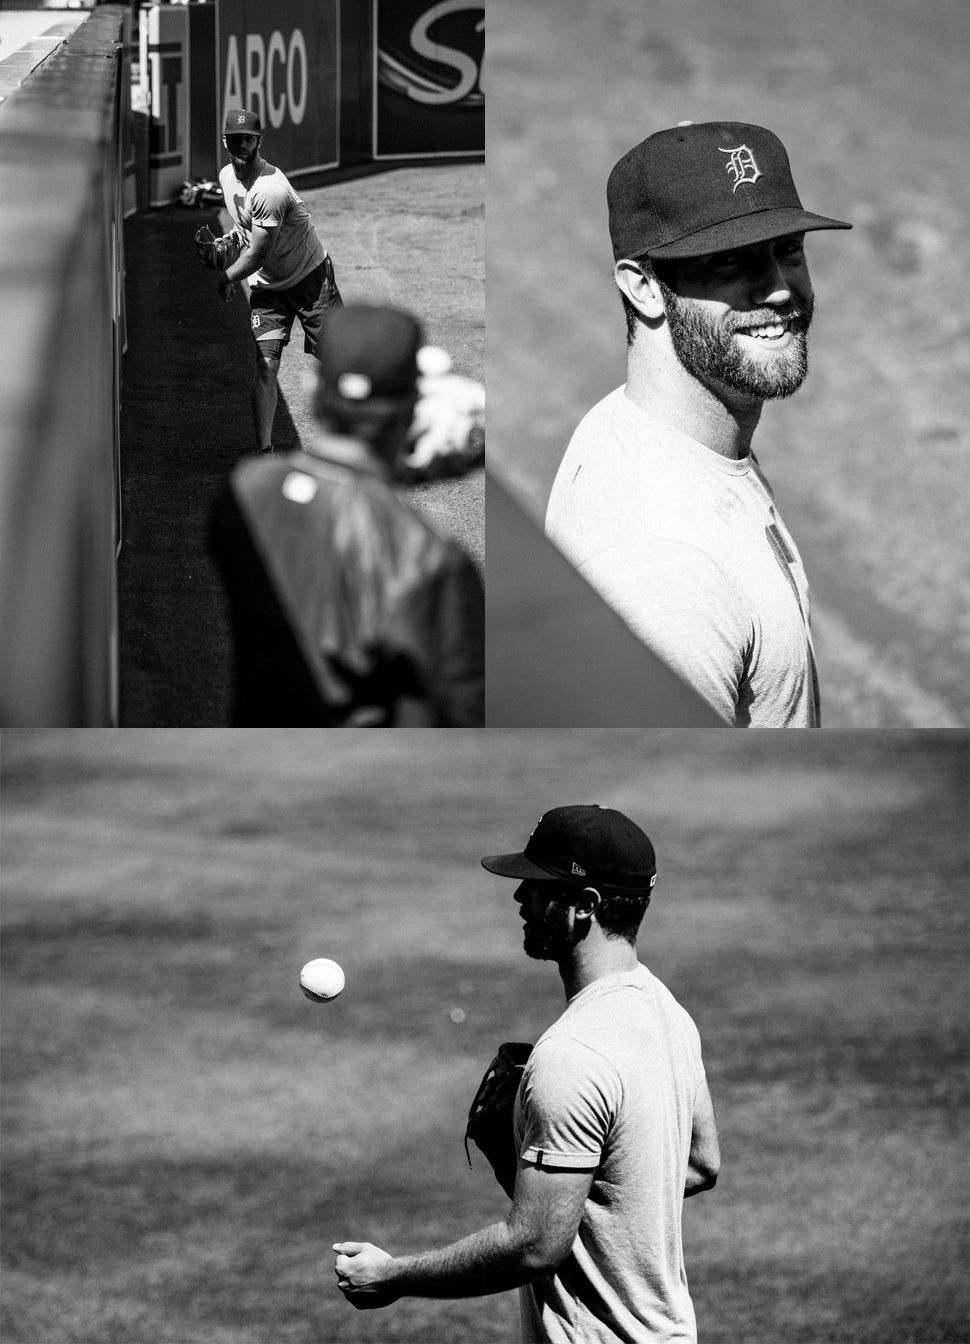 Daniel Norris casually playing baseball